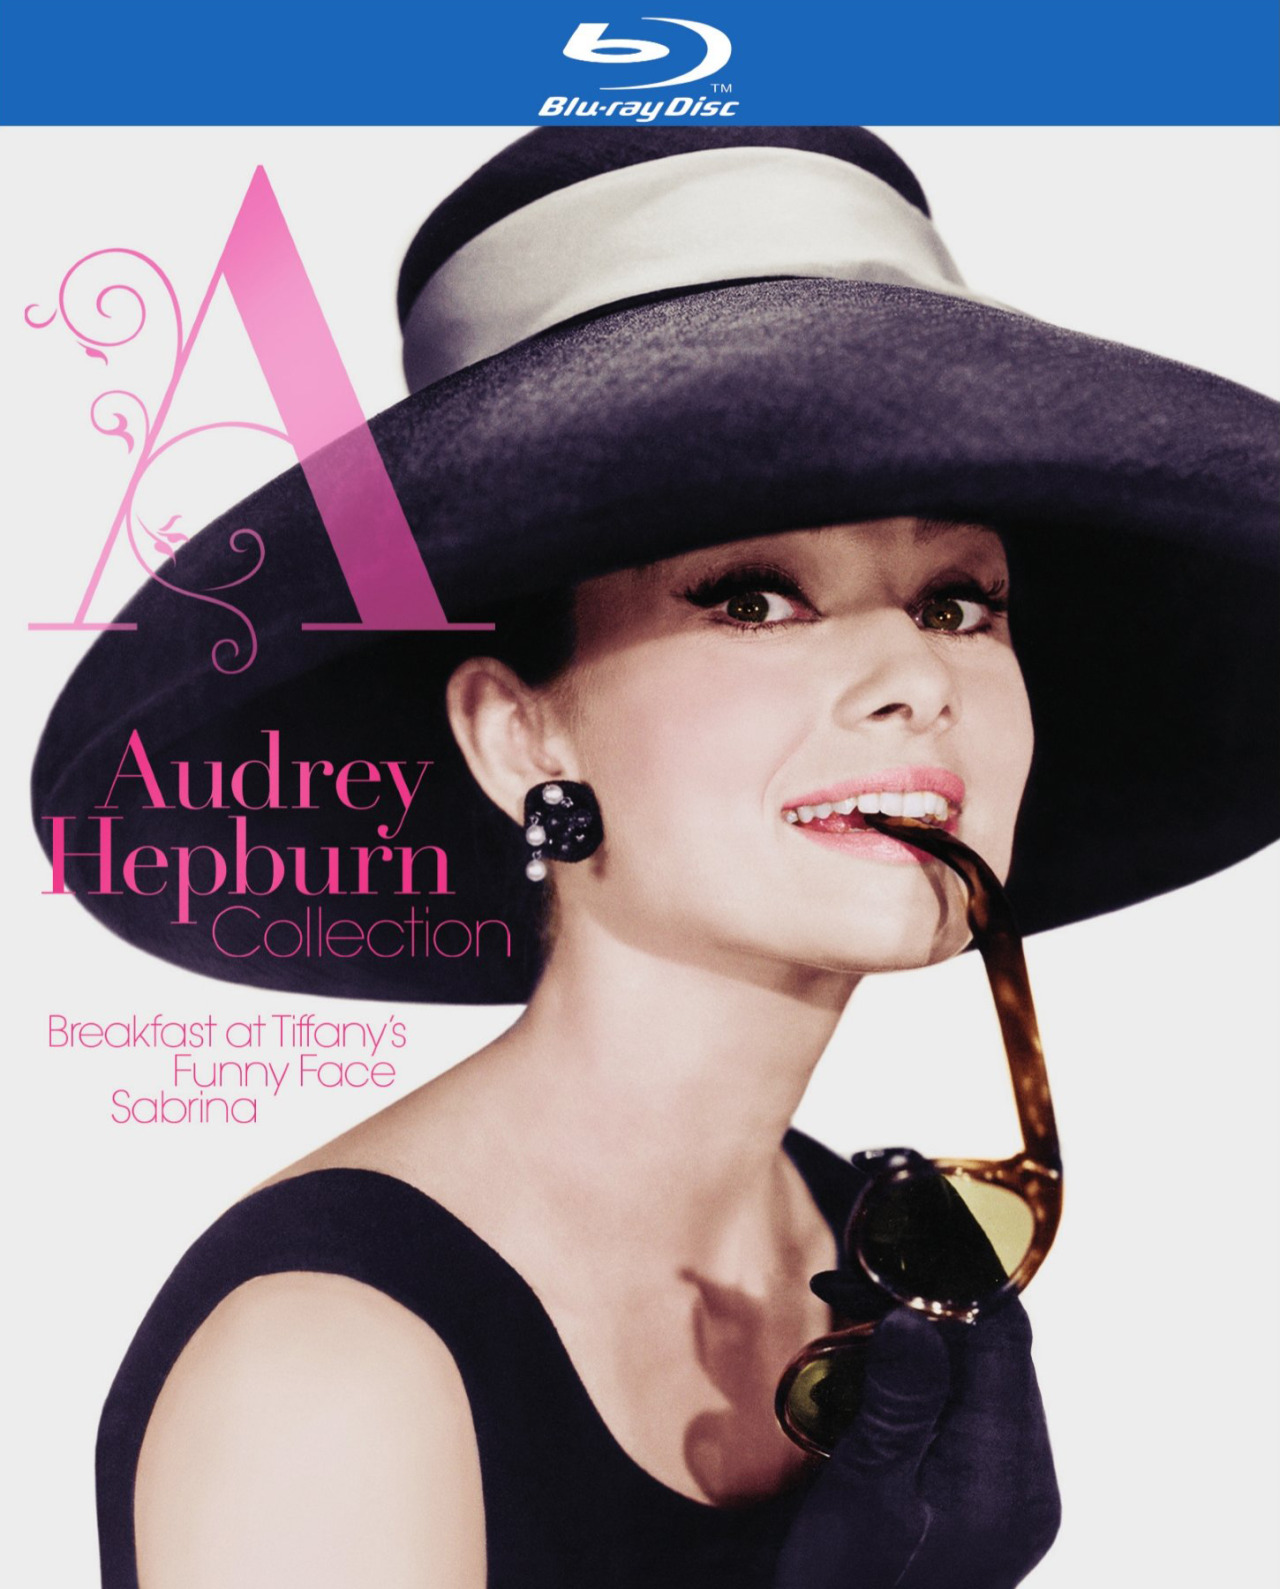 Diego!!! Congrats on winning the Audrey Hepburn Collection on Blu-Ray! Thank you to everyone who...